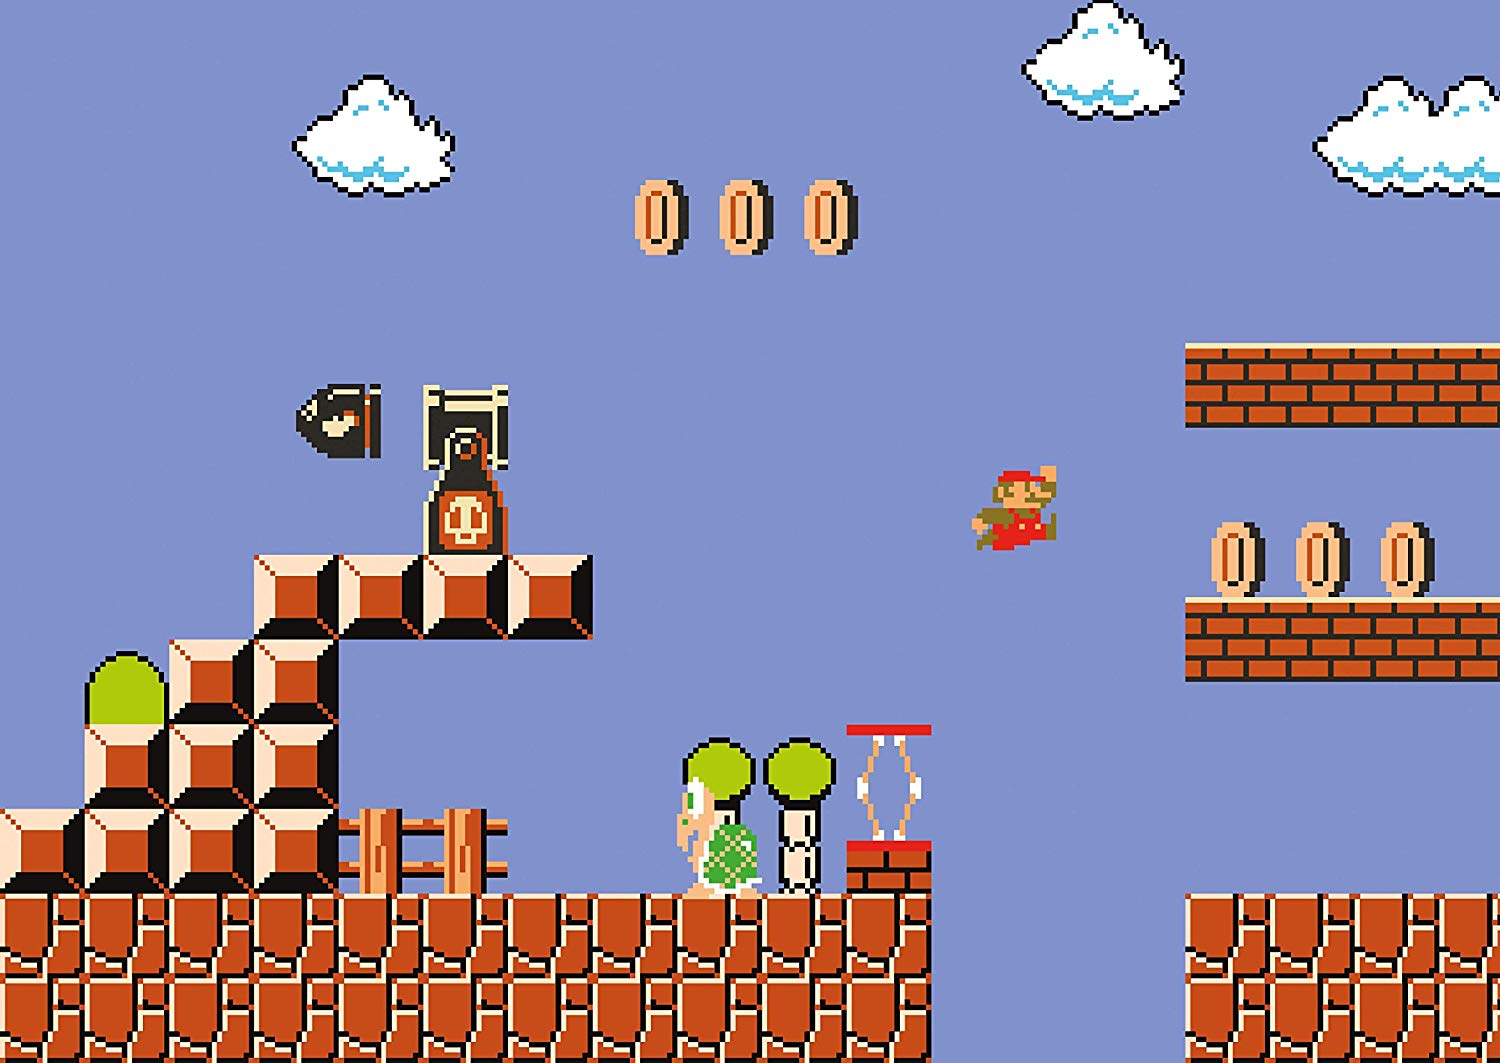 winning-moves-super-mario-bros-high-jumper-500-teile-puzzle-winning-moves-11484